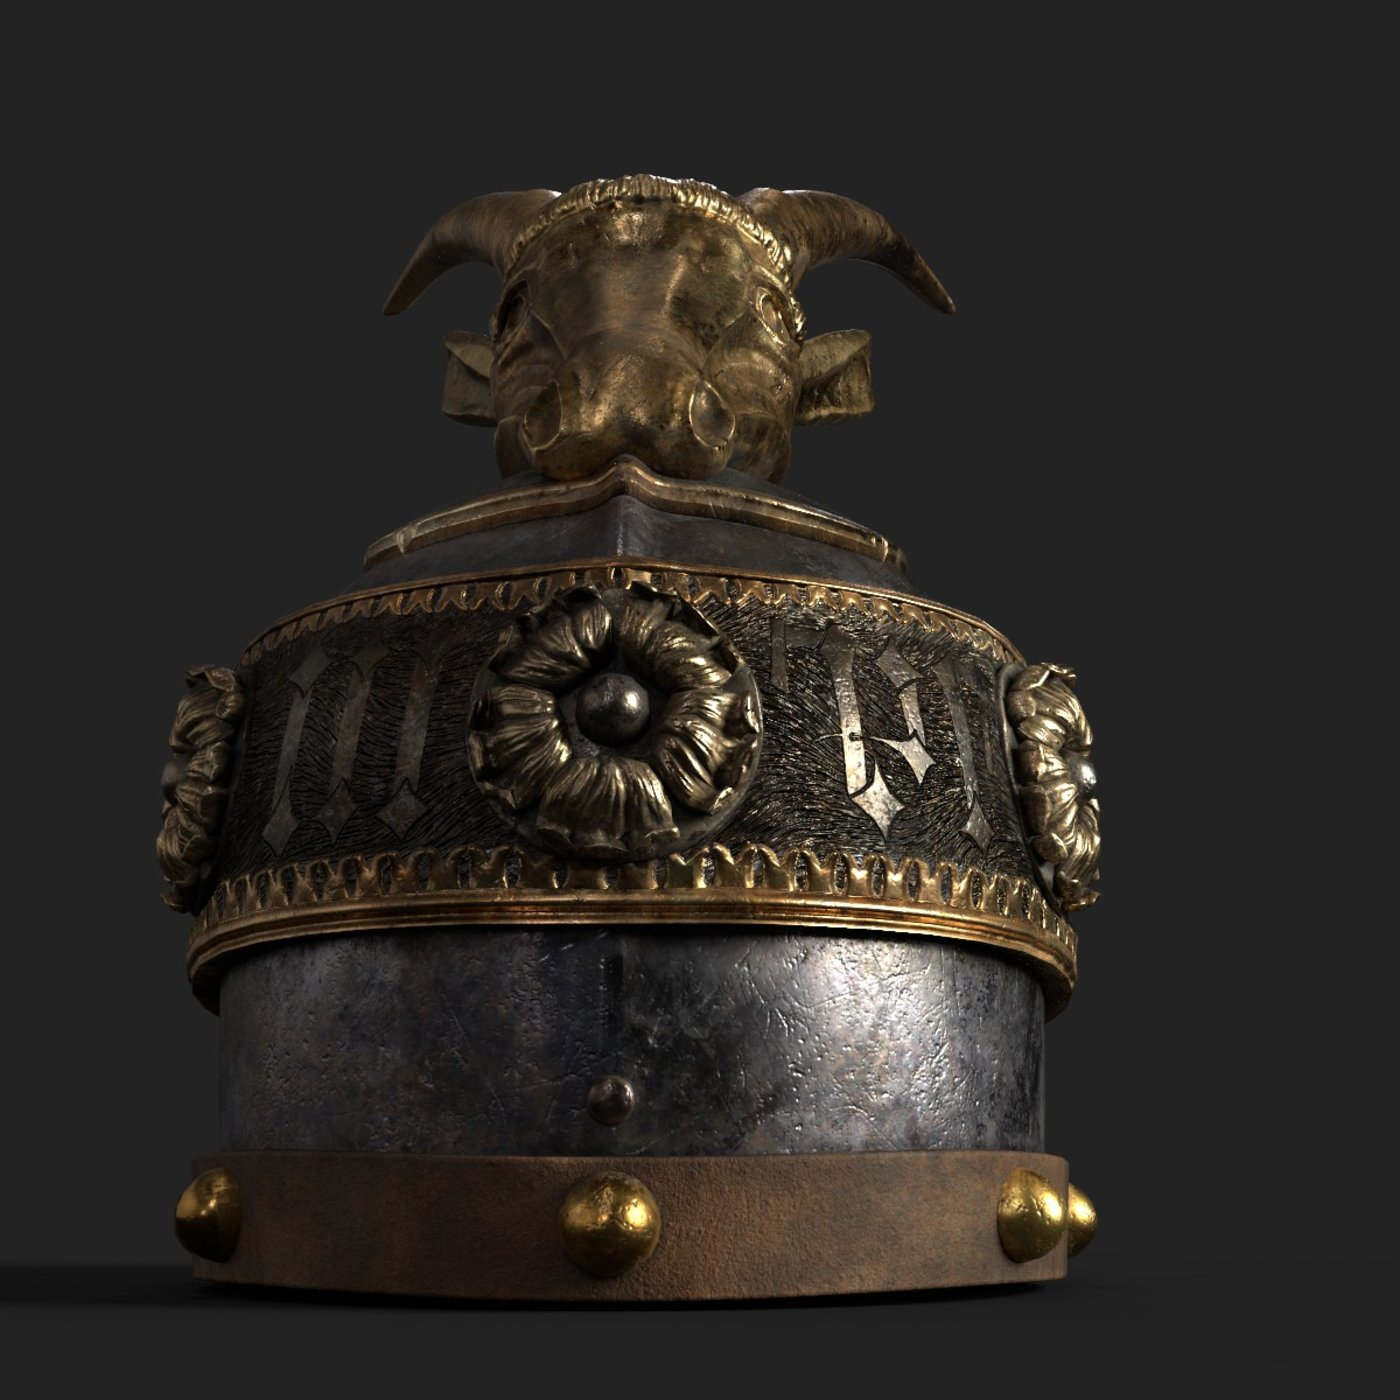 This is Medieval Helmet with Goat Design